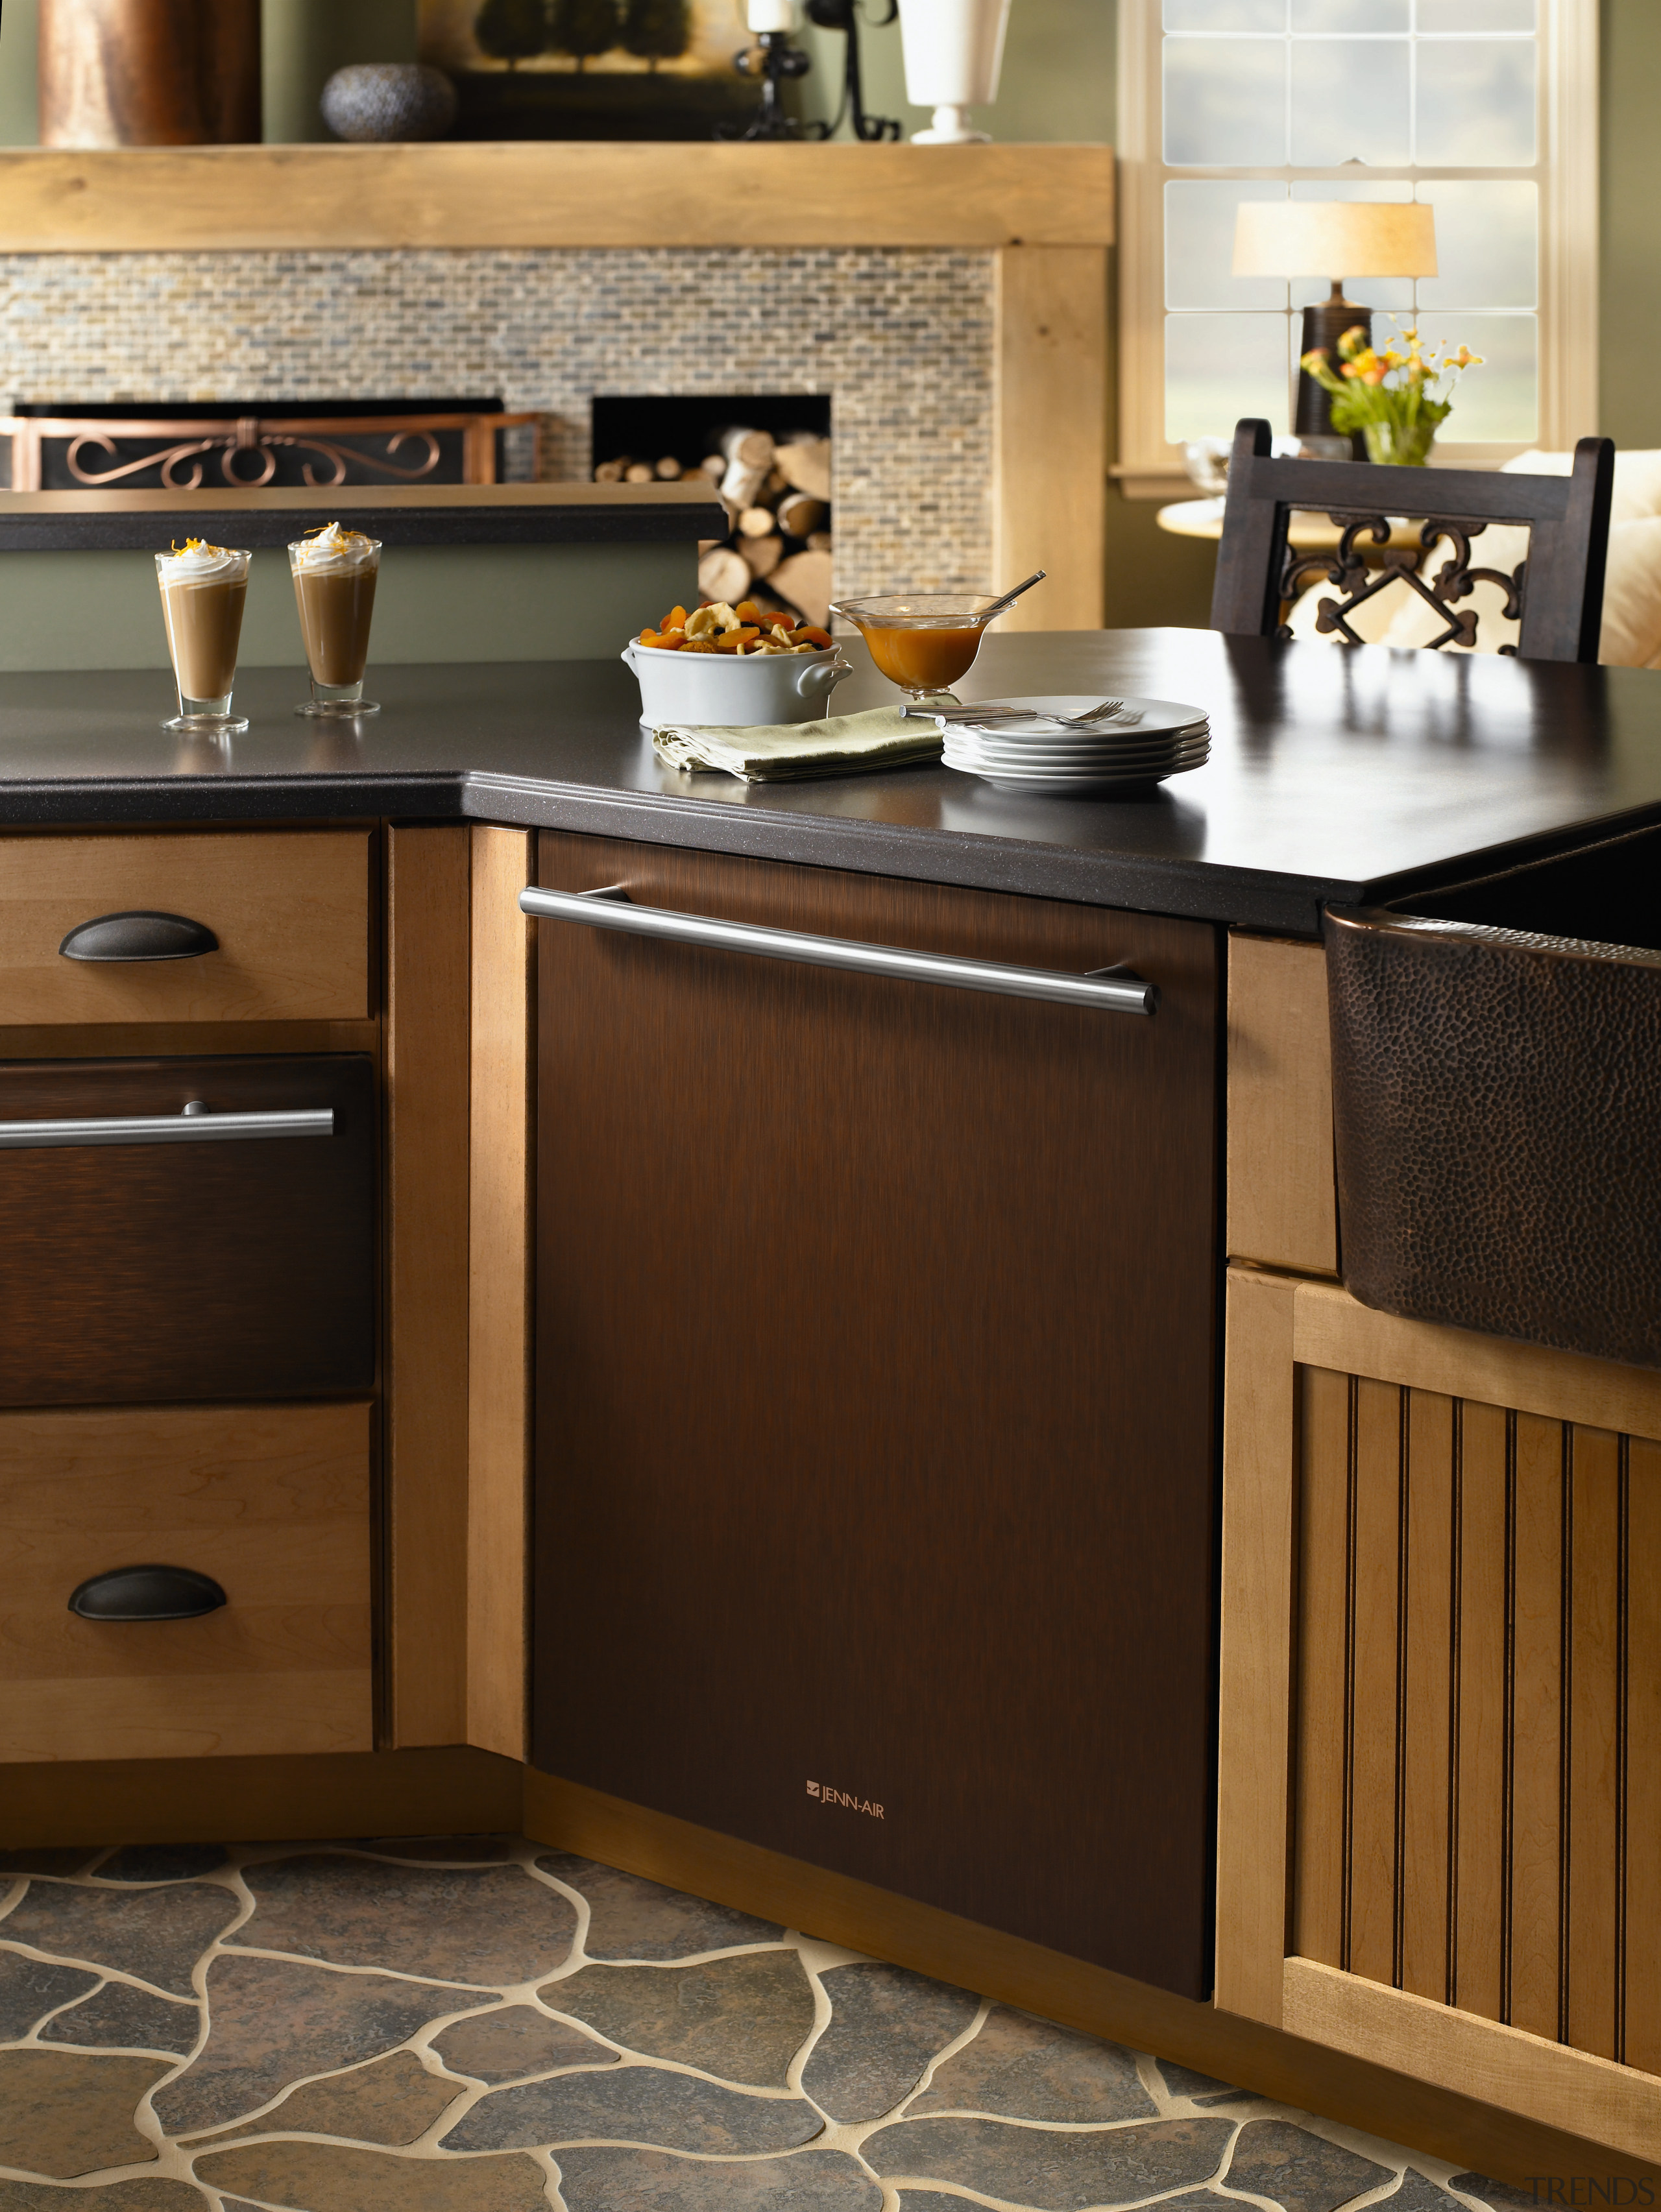 Bronze bench top contemporary kitchen - Bronze bench cabinetry, chest of drawers, countertop, cuisine classique, drawer, floor, flooring, furniture, hardwood, home appliance, interior design, kitchen, kitchen appliance, kitchen stove, major appliance, sideboard, table, tile, wood, wood flooring, wood stain, brown